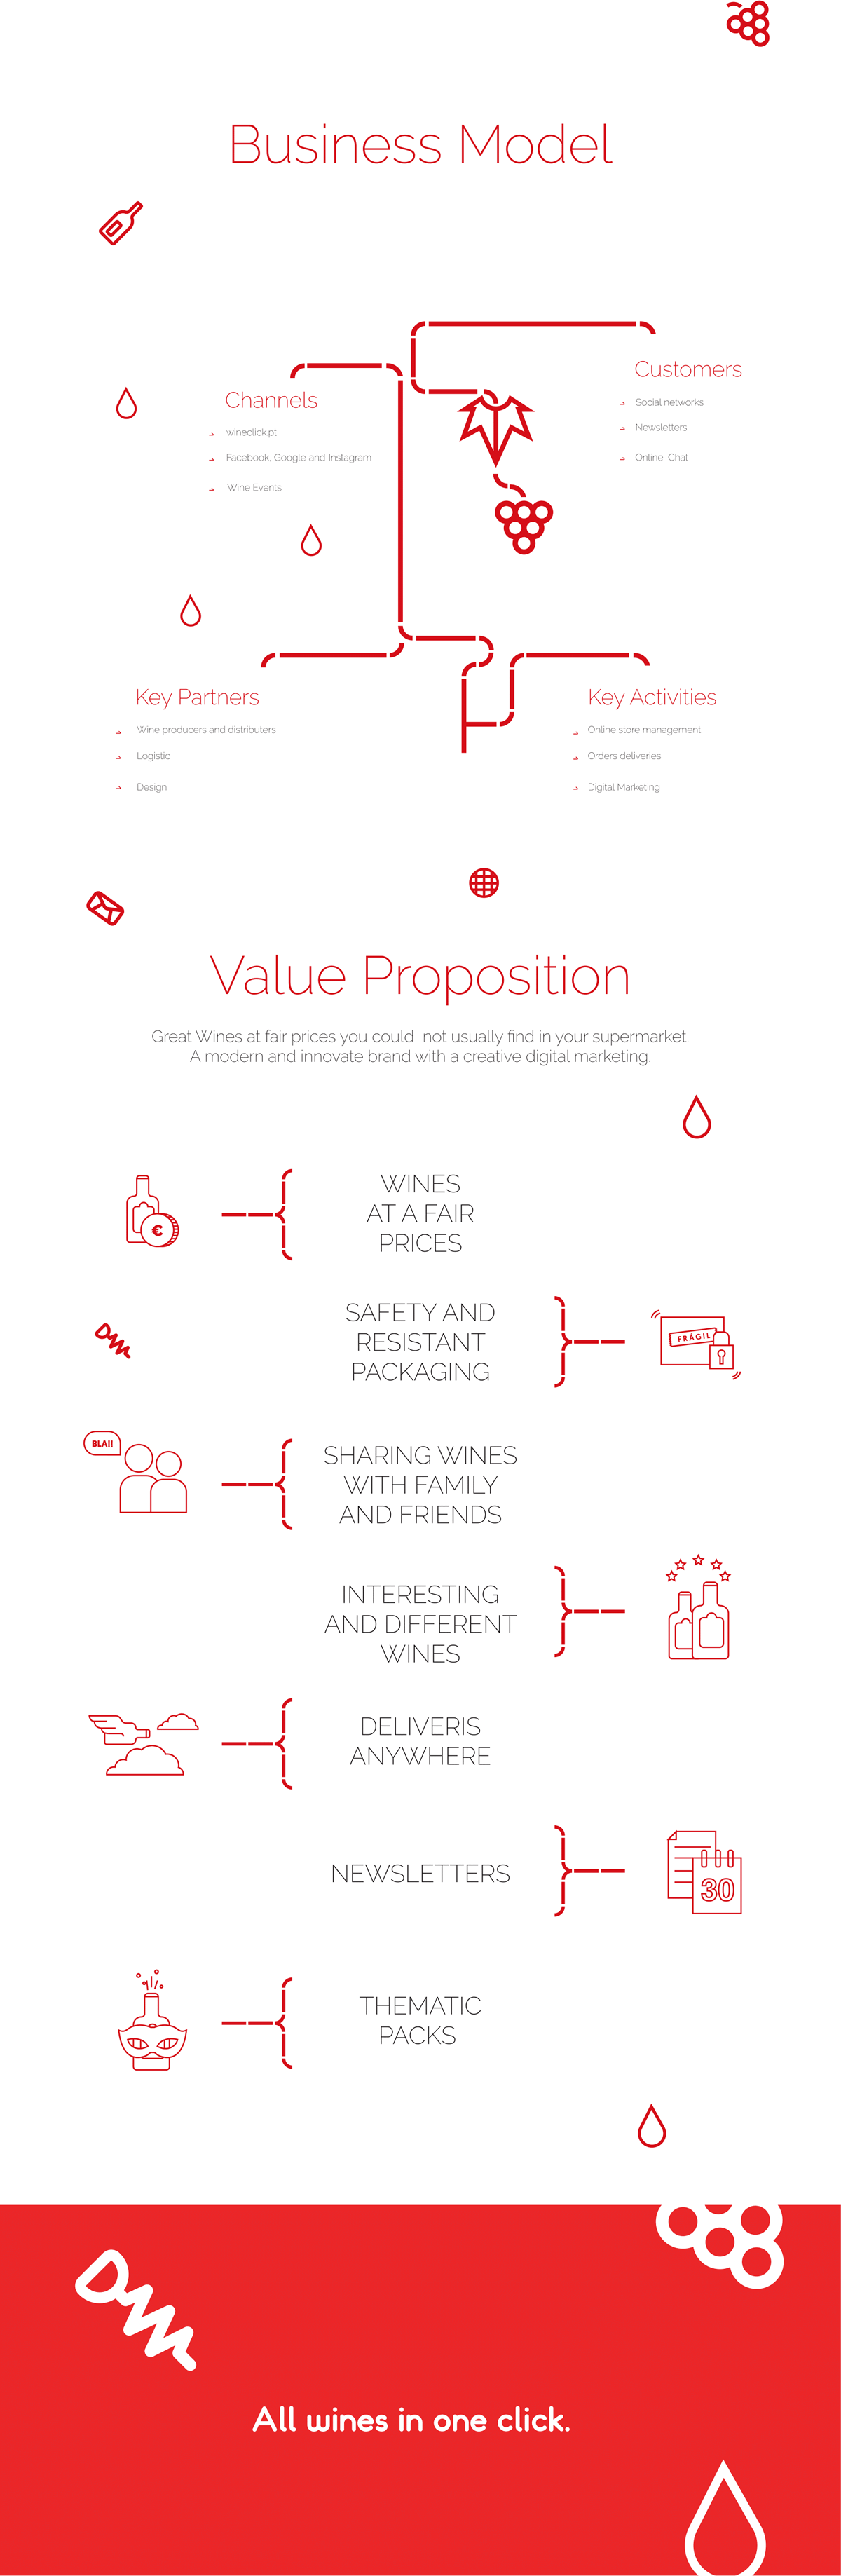 Business Model - Value Proposition